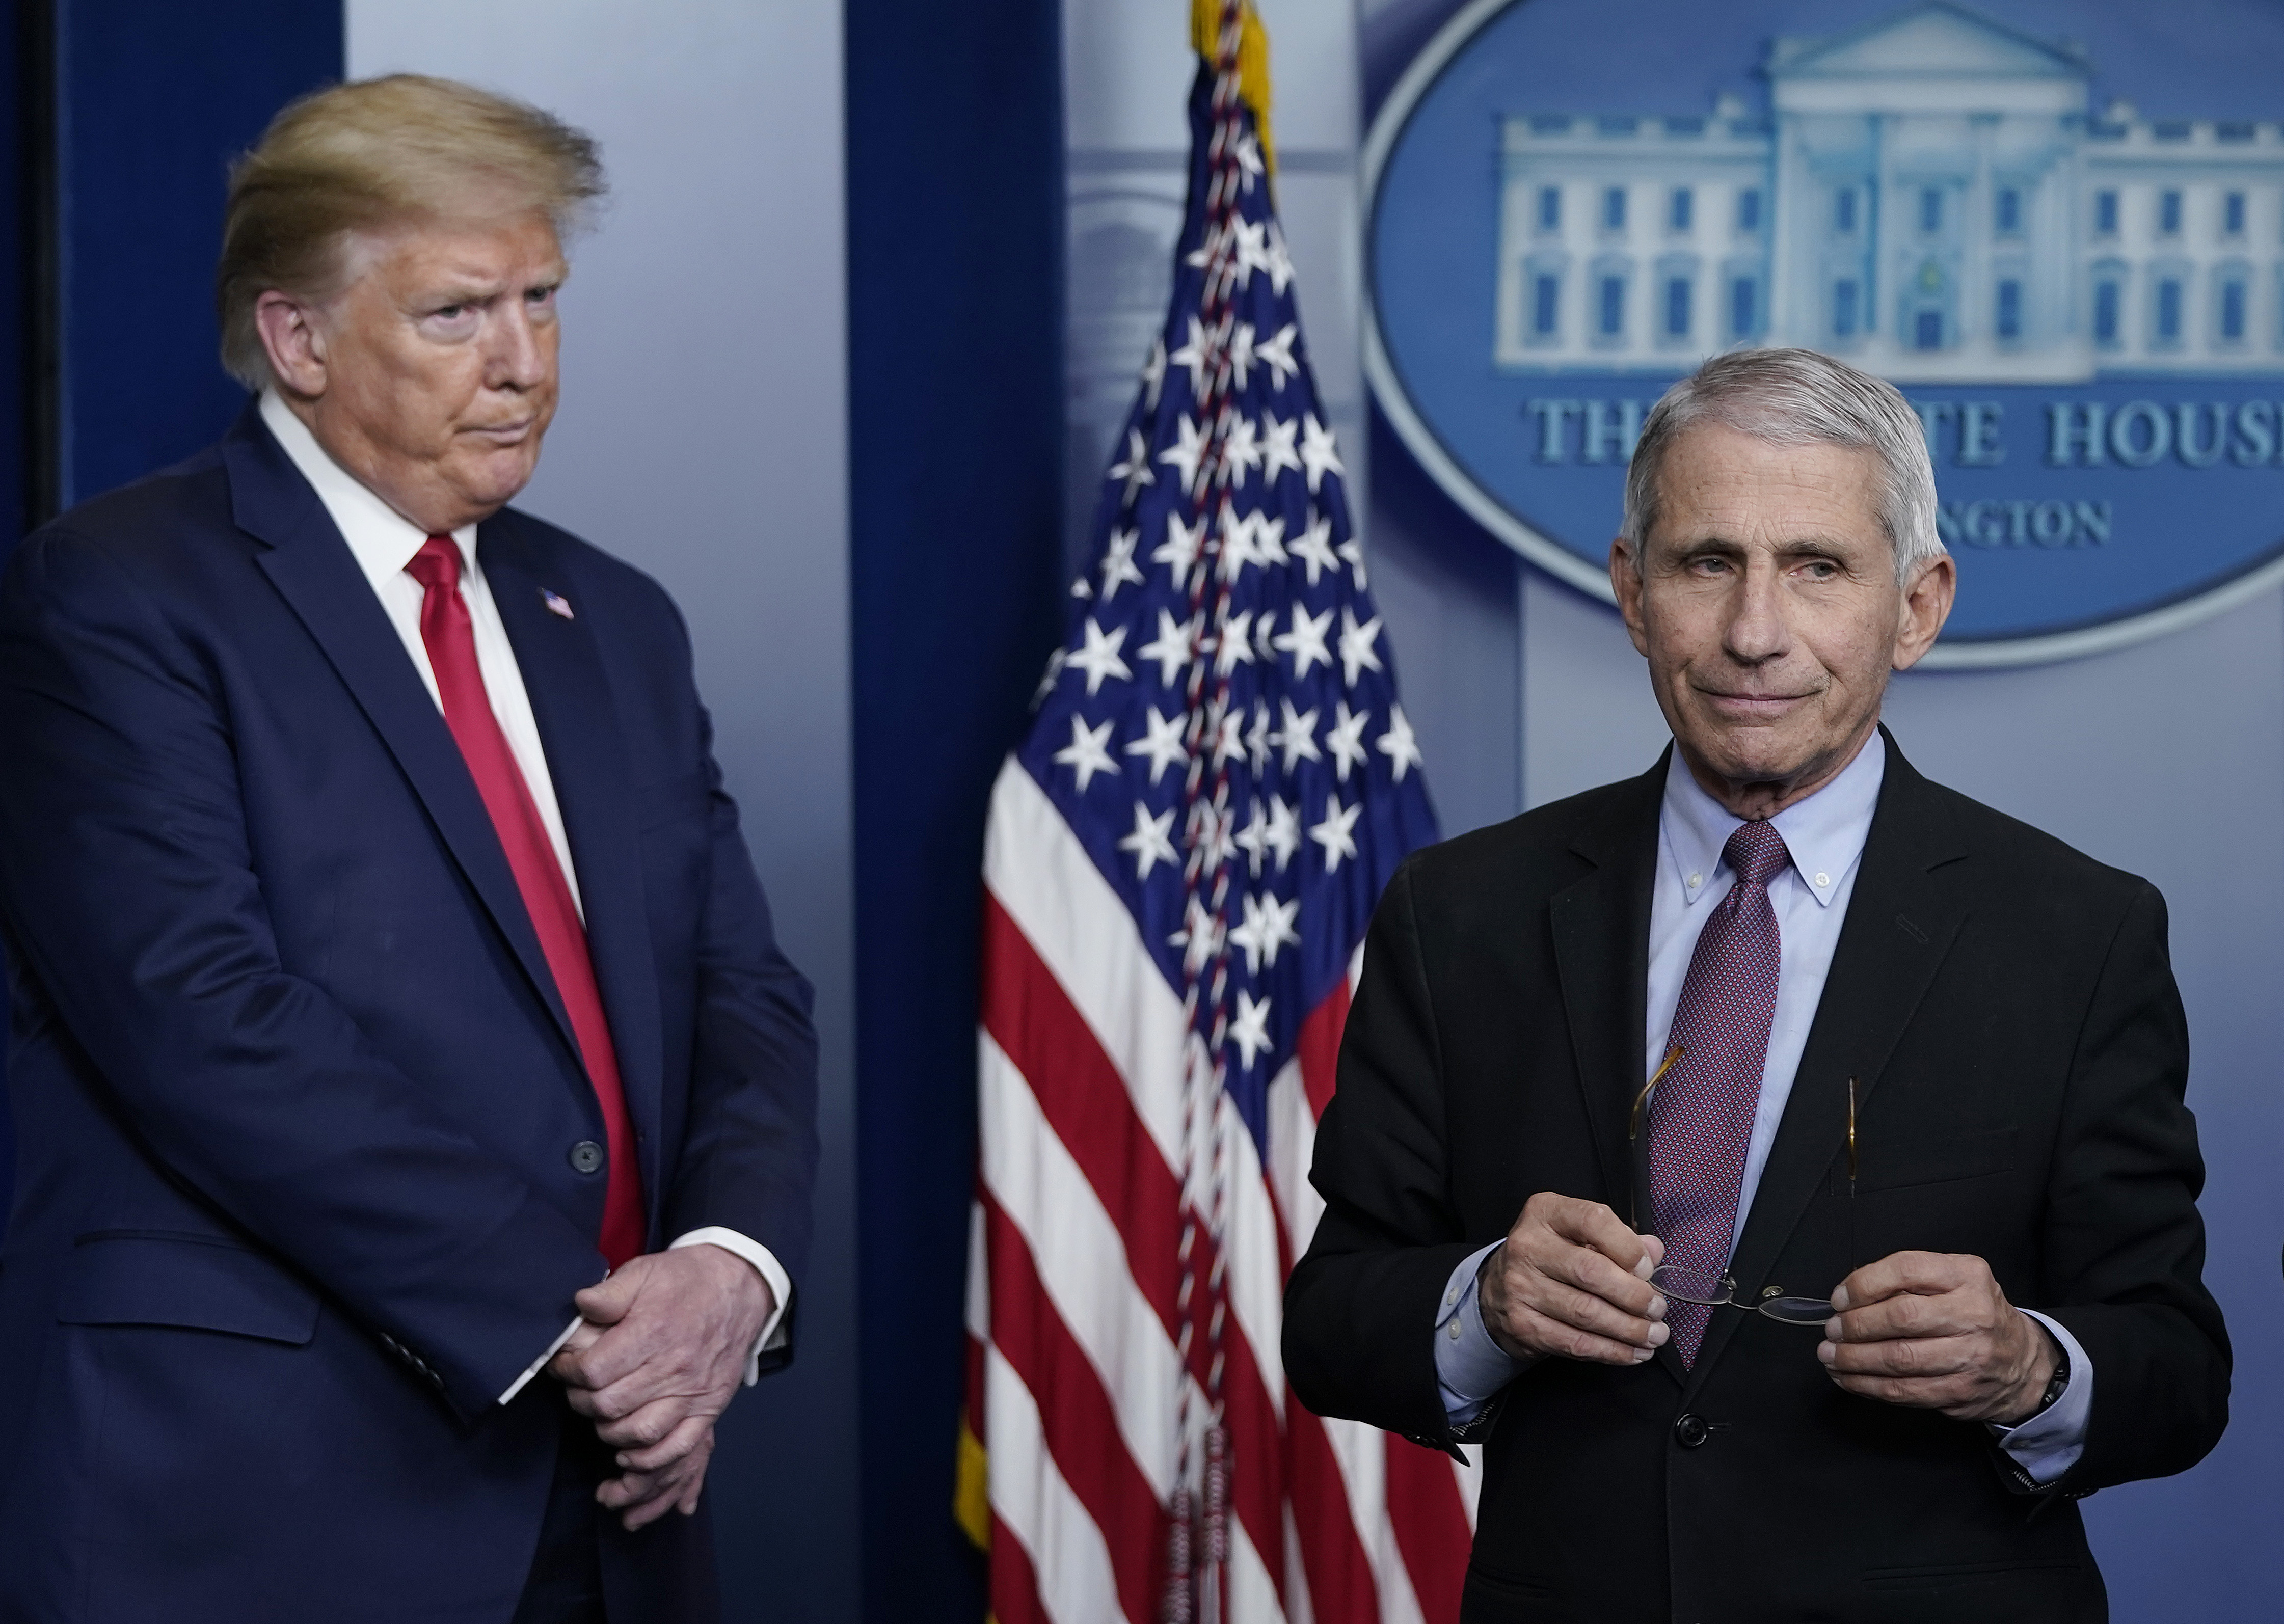 Donald Trump and Anthony Fauci stand on either side of an American flag on the White House press room stage in April 2020.